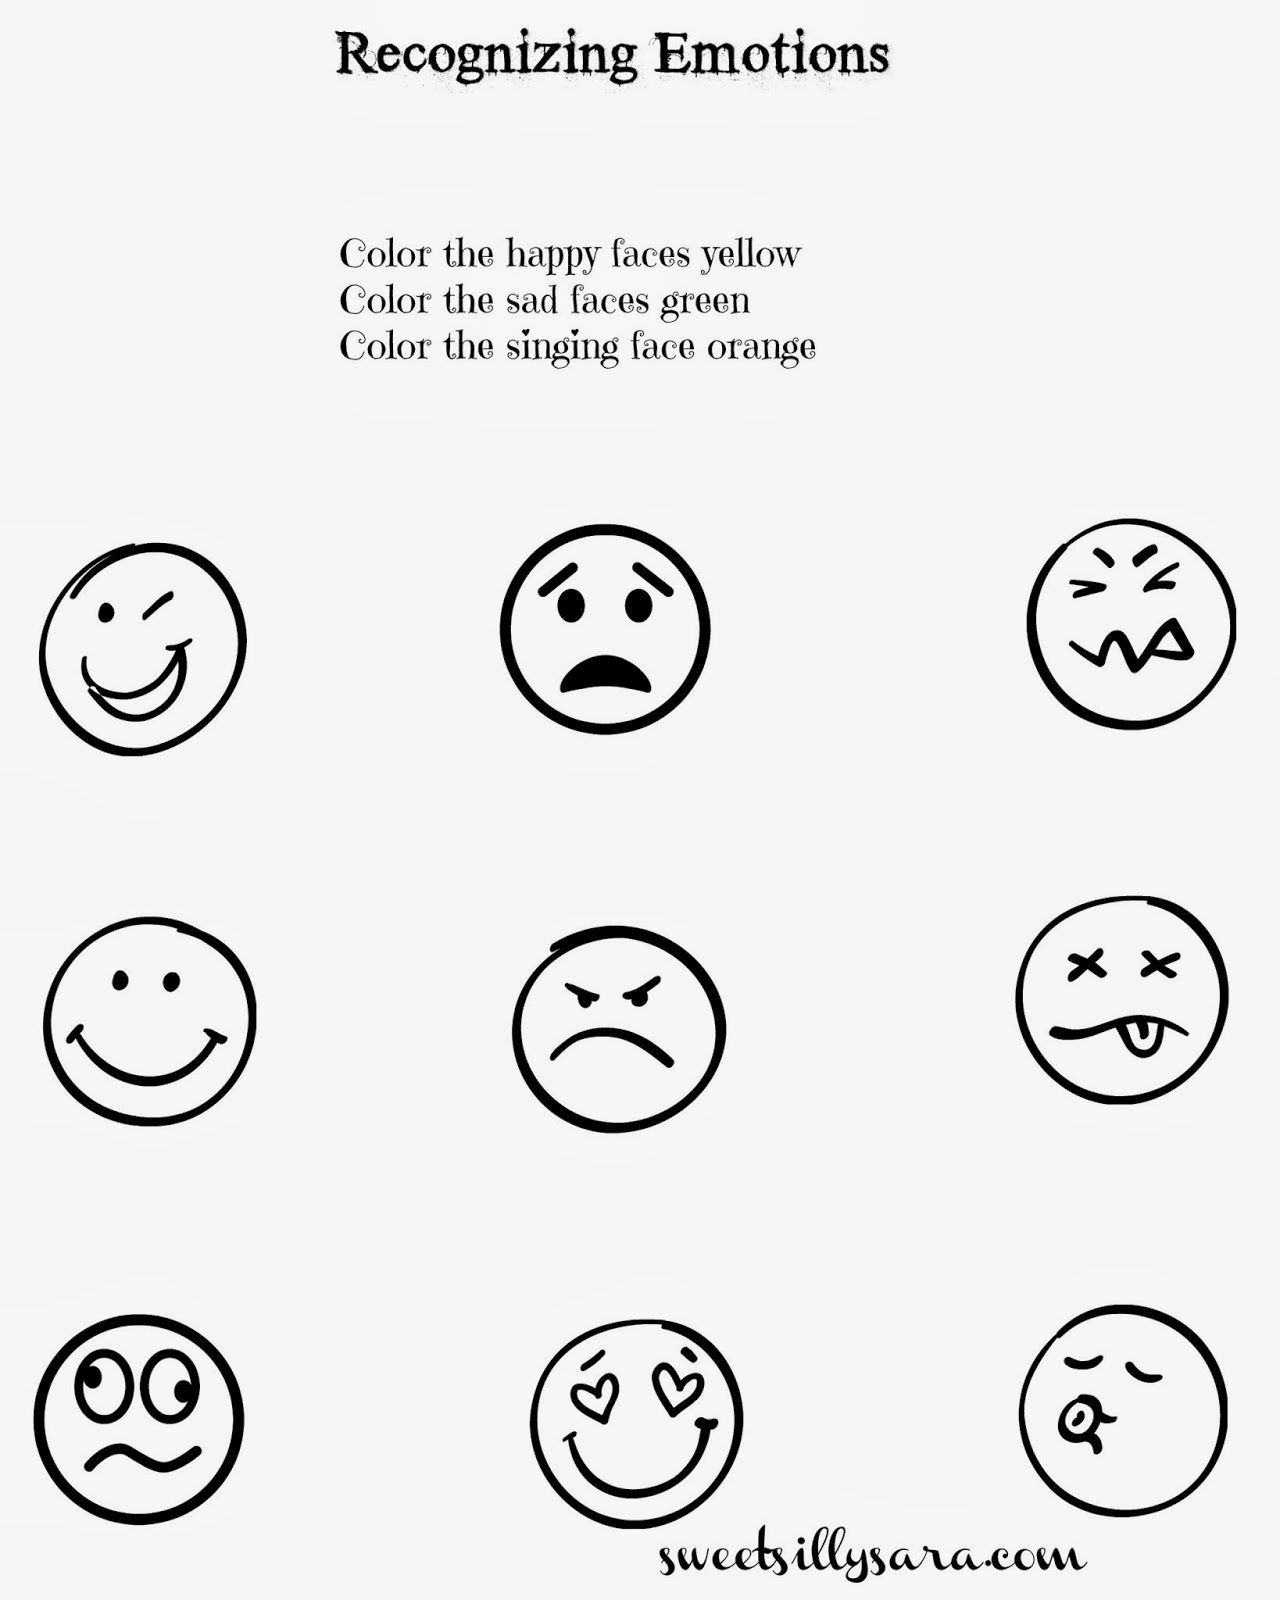 Sweet Silly Sara Recognizing Emotions Worksheet